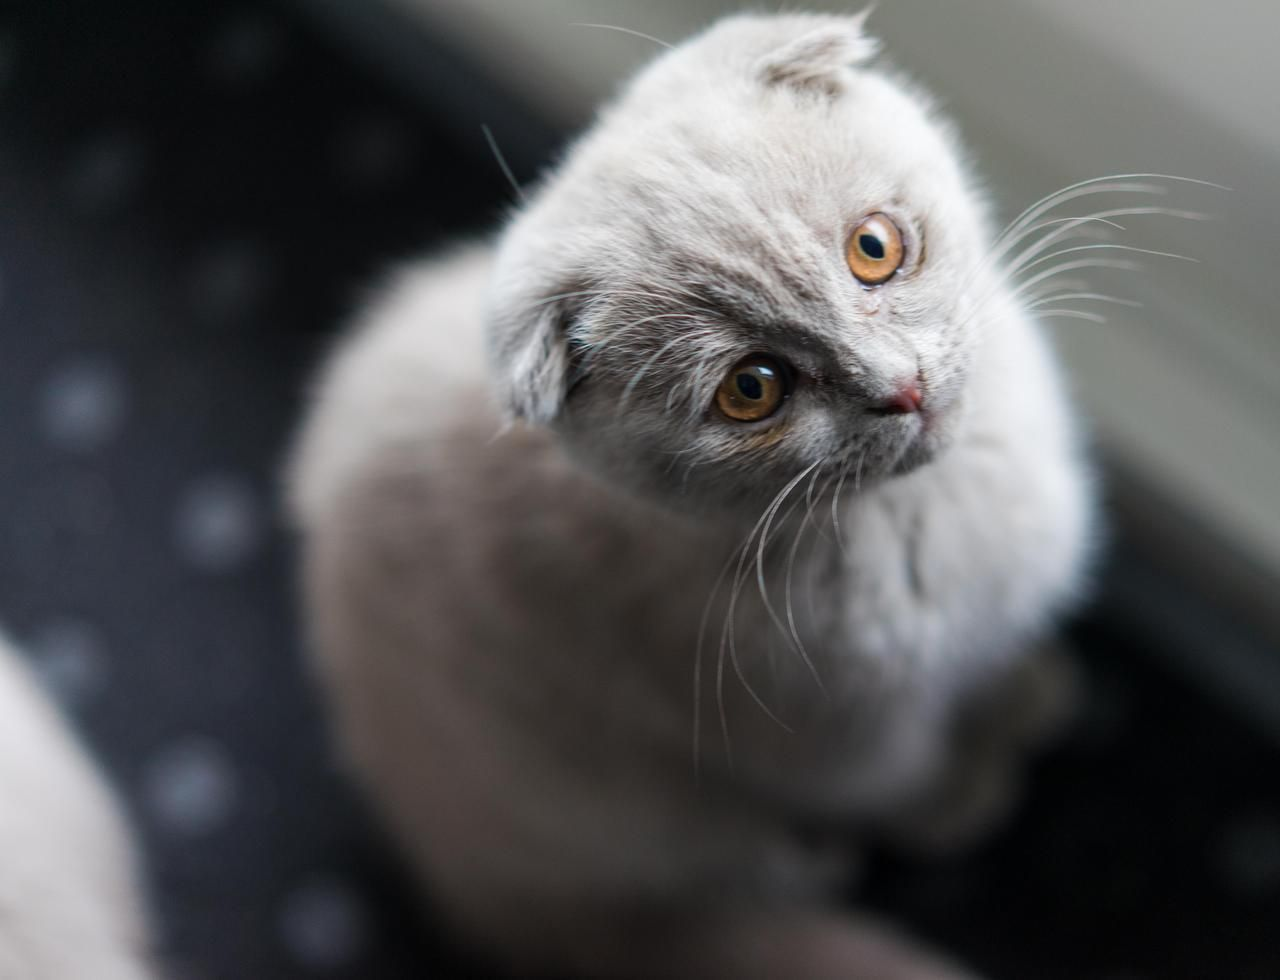 This Is Snow 13 Weeks Old Scottish Fold By Desilent Cats Kitten Catsonweb Cute Adorable Funny Sleepy Anima Scottish Fold Scottish Fold Cat Funny Kittens Cutest